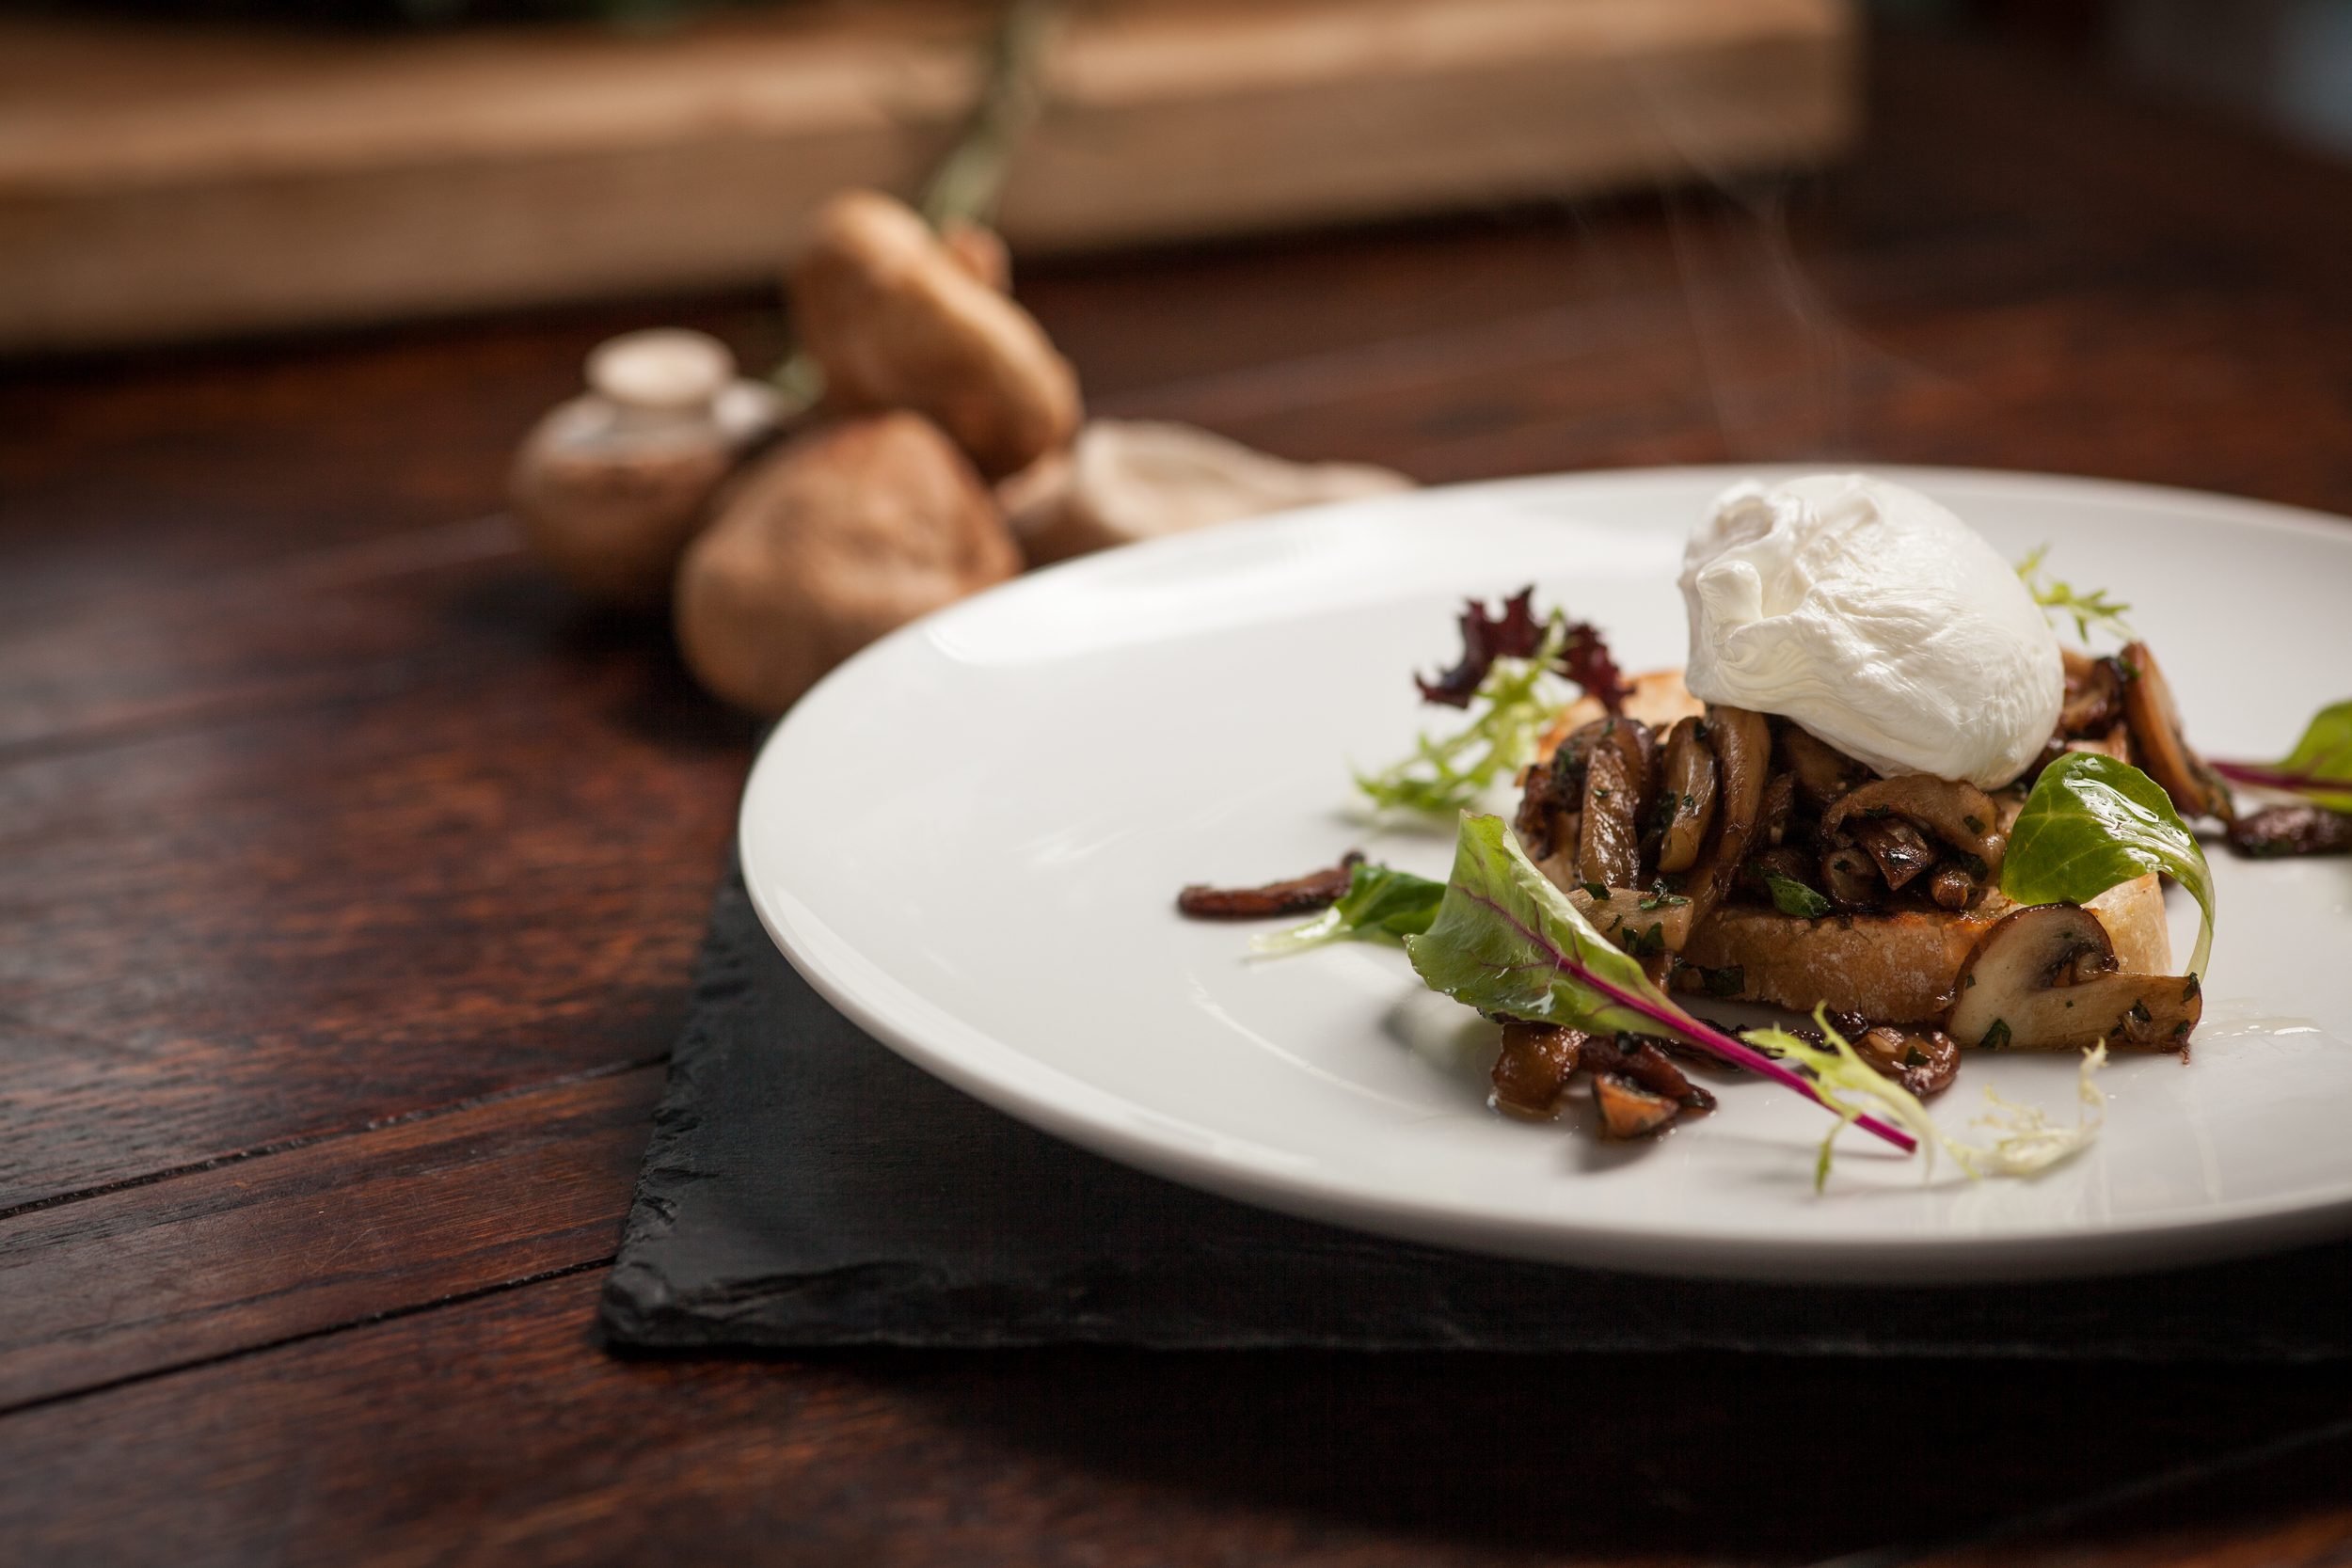 Food photography  | Canon 5Dii | 105mm | F4.5 - 1/125th - iso200 - Lit with Elinchrom Flash + Beauty dish